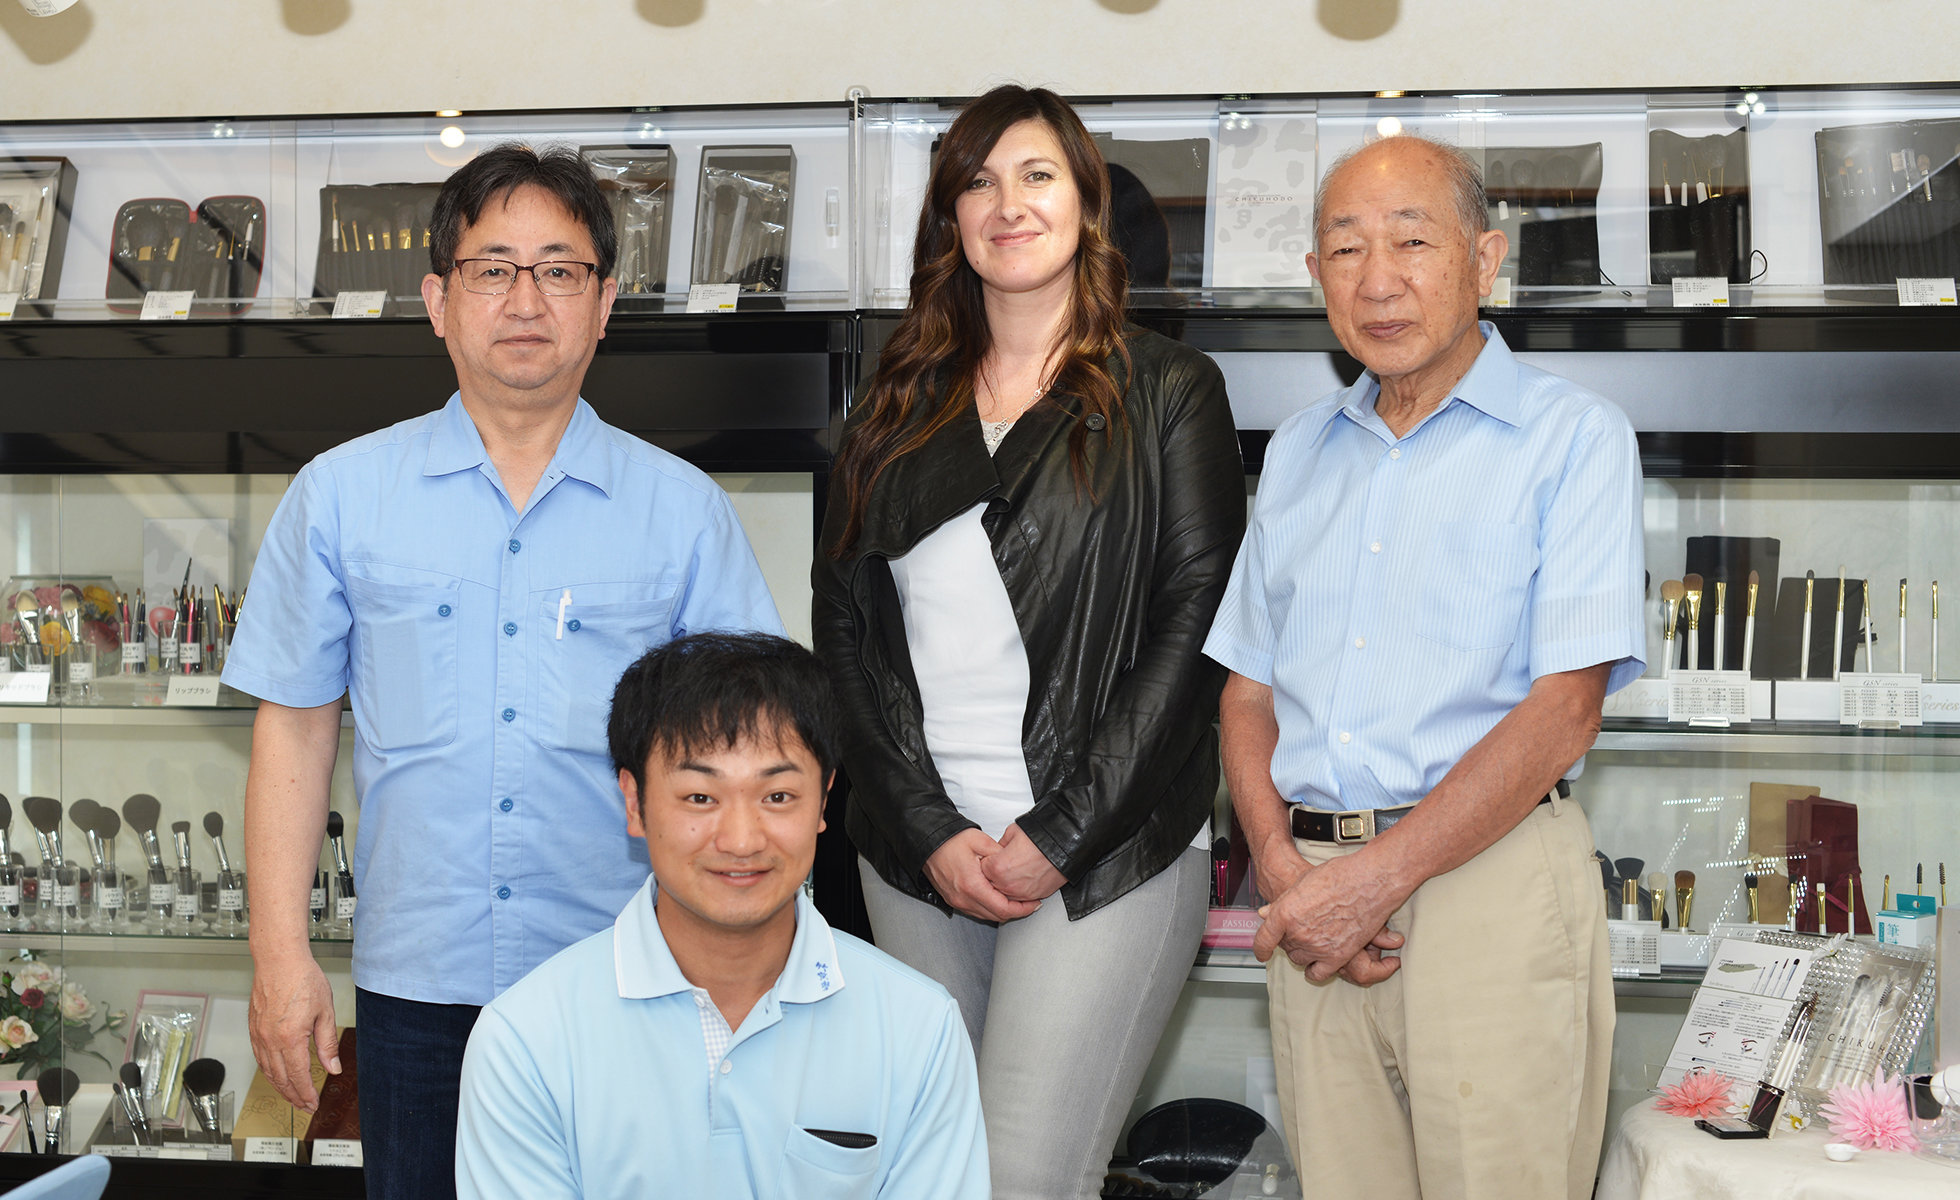 Sonia G. with the Chikuhodo Family